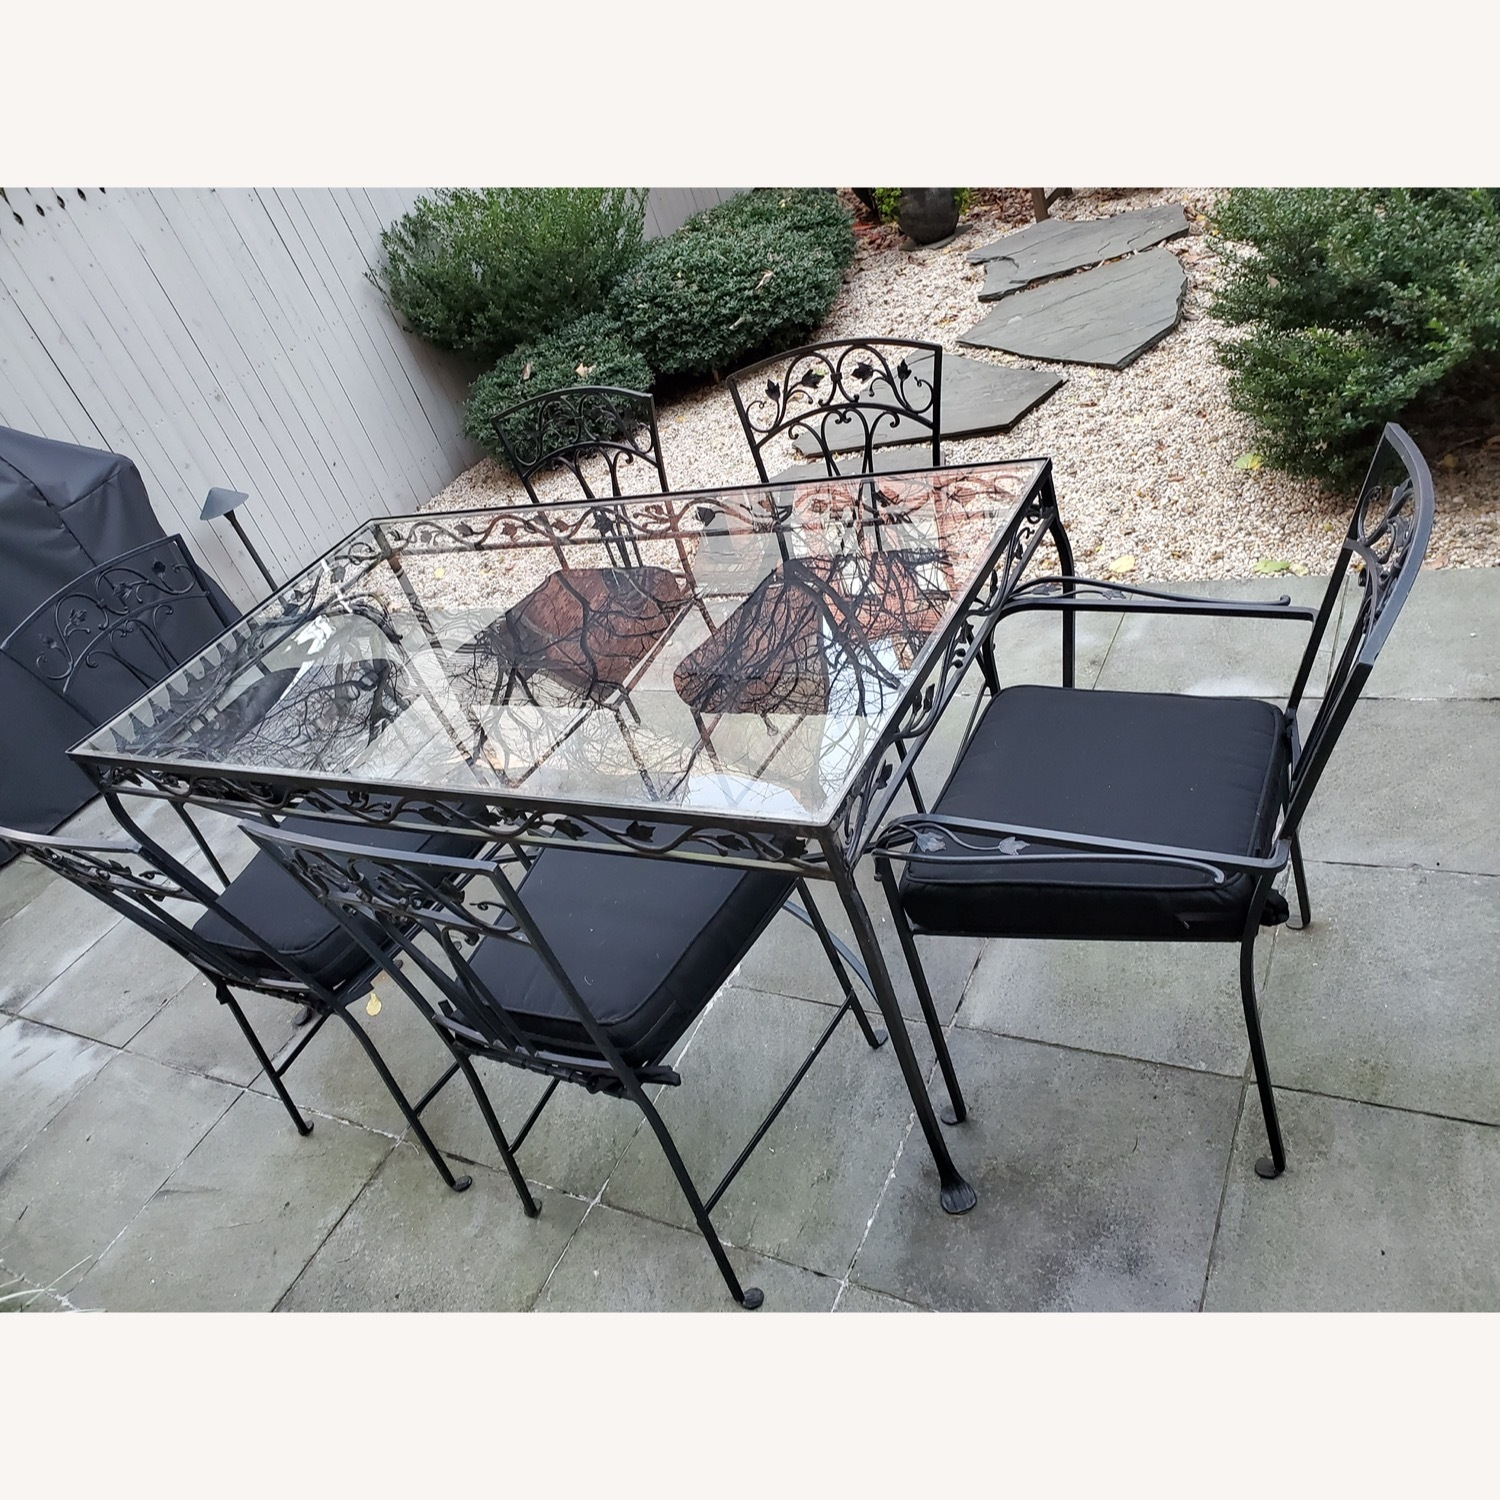 1940's VINTAGE OUTDOOR WROUGHT IRON TABLE/CHAIRS - image-3